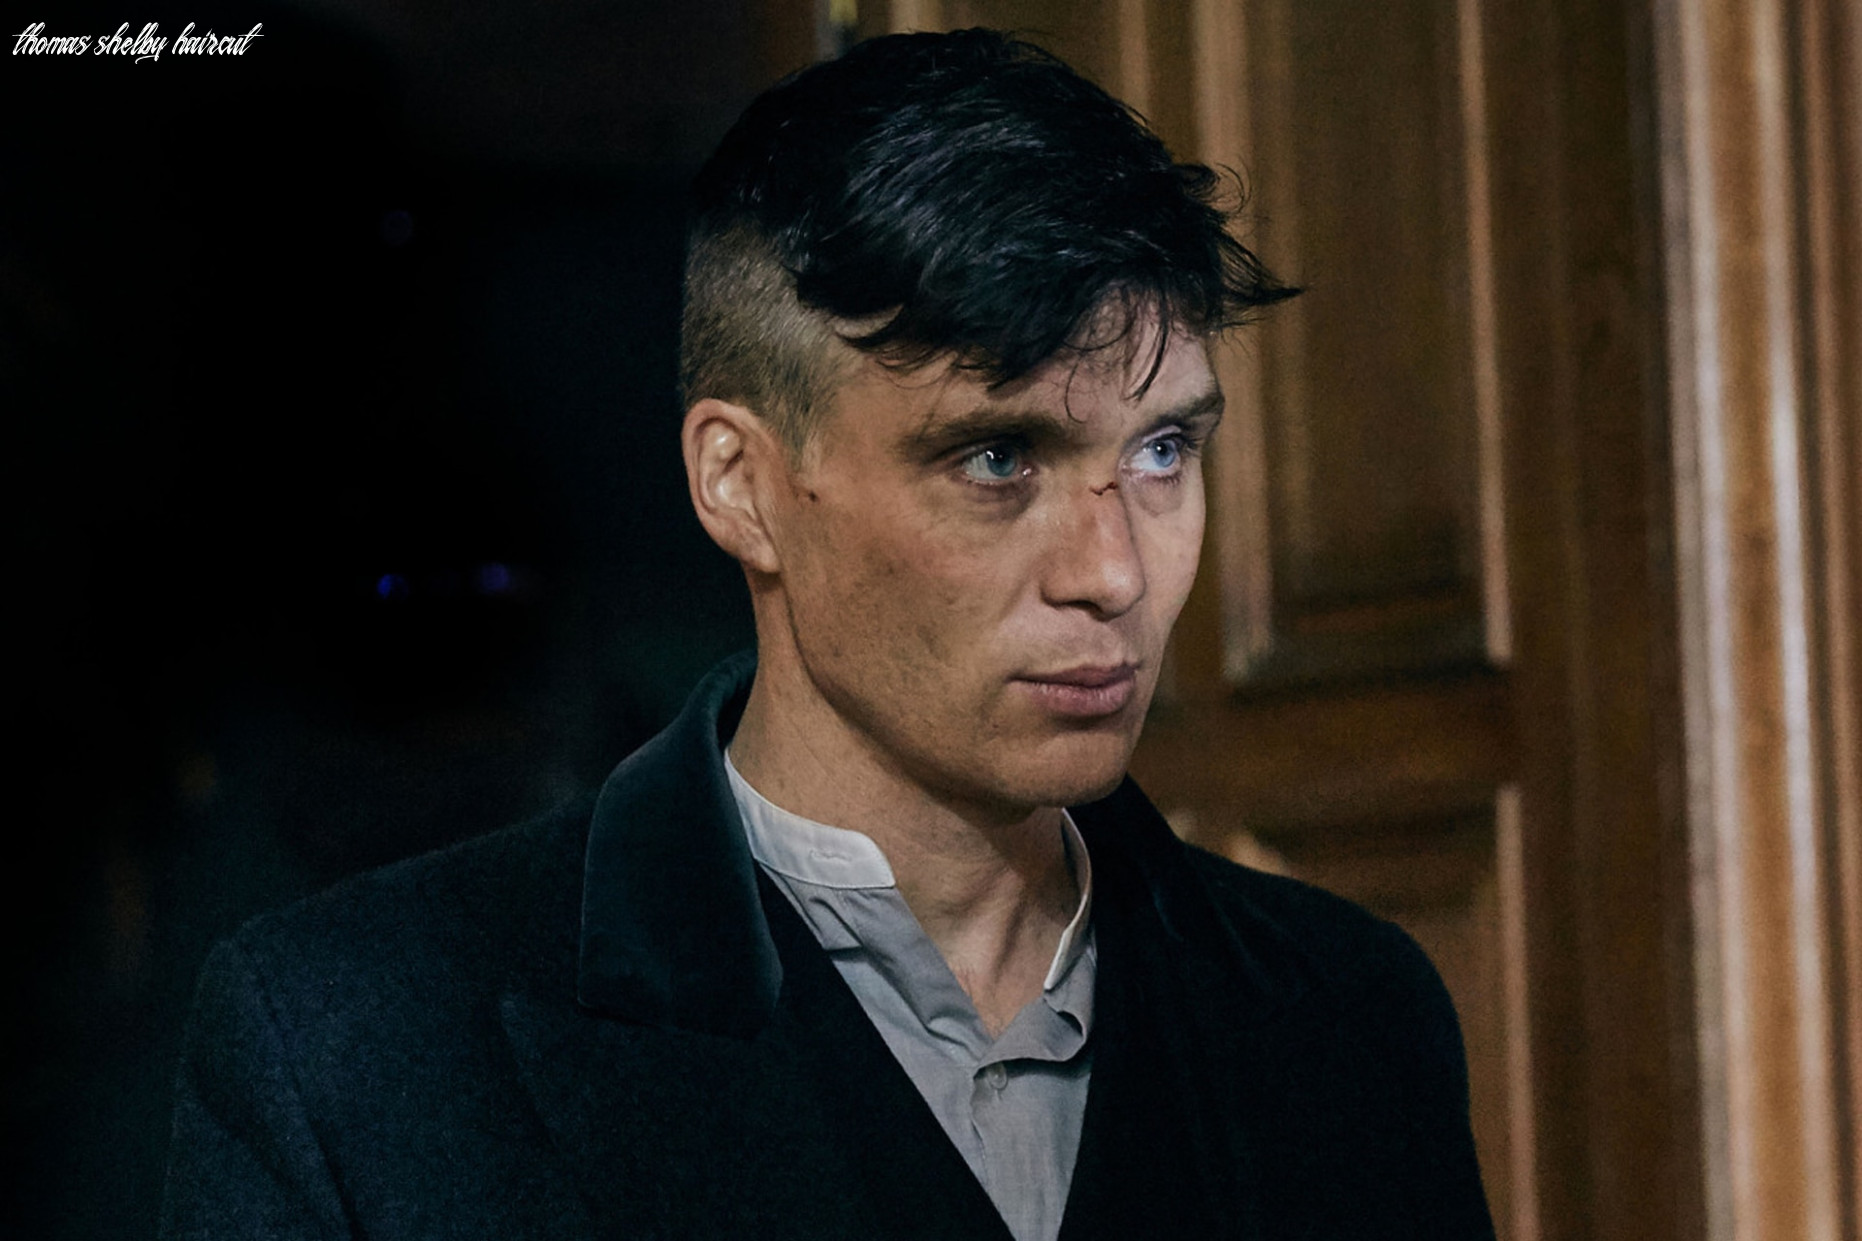 PSA: Cillian Murphy, The Man Who Plays Tommy Shelby Himself, Hates ...